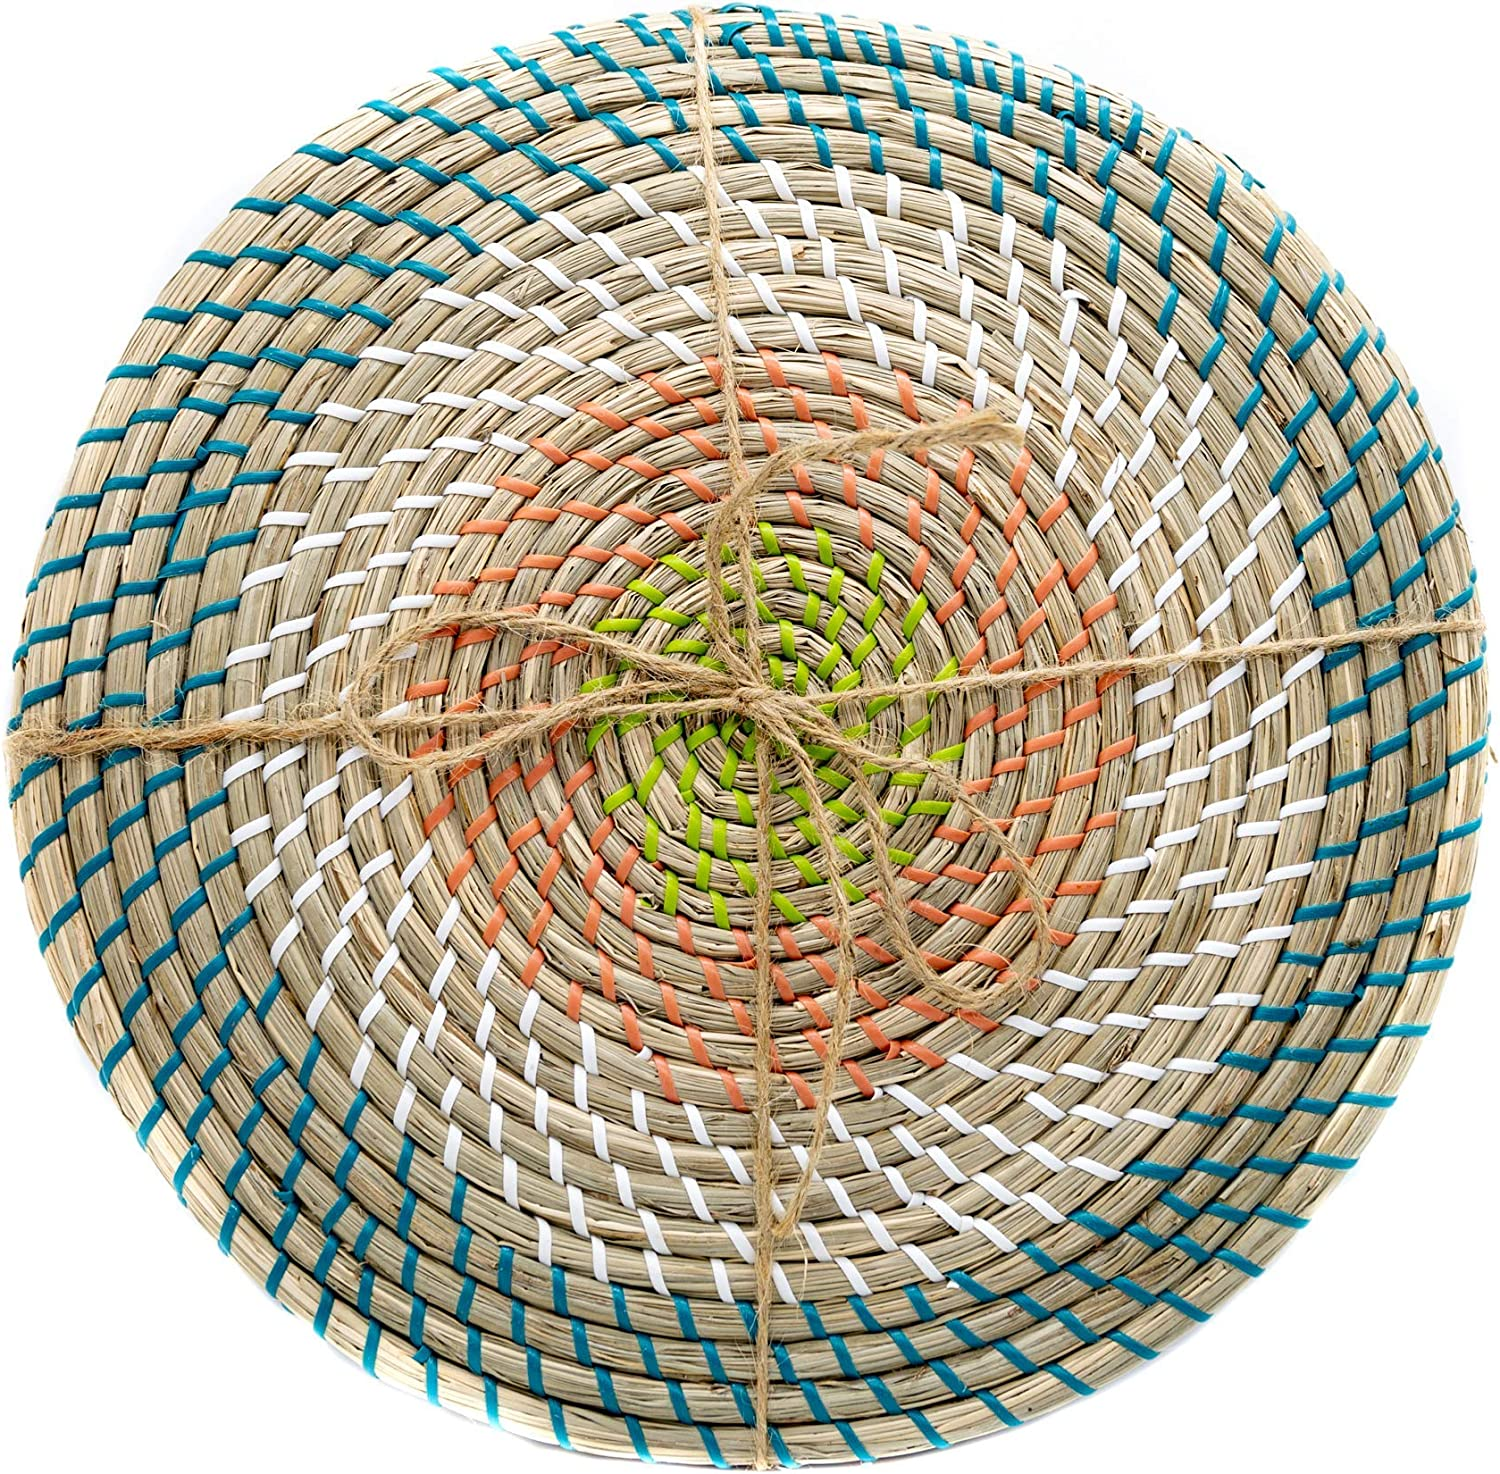 Woven Wicker Rattan Wall Decor, Round Seagrass Boho Kitchen Decor, Minimalist Rattan Chargers & Placemats for Dining Table & Wall Art, Rattan Wall Decorative Basket